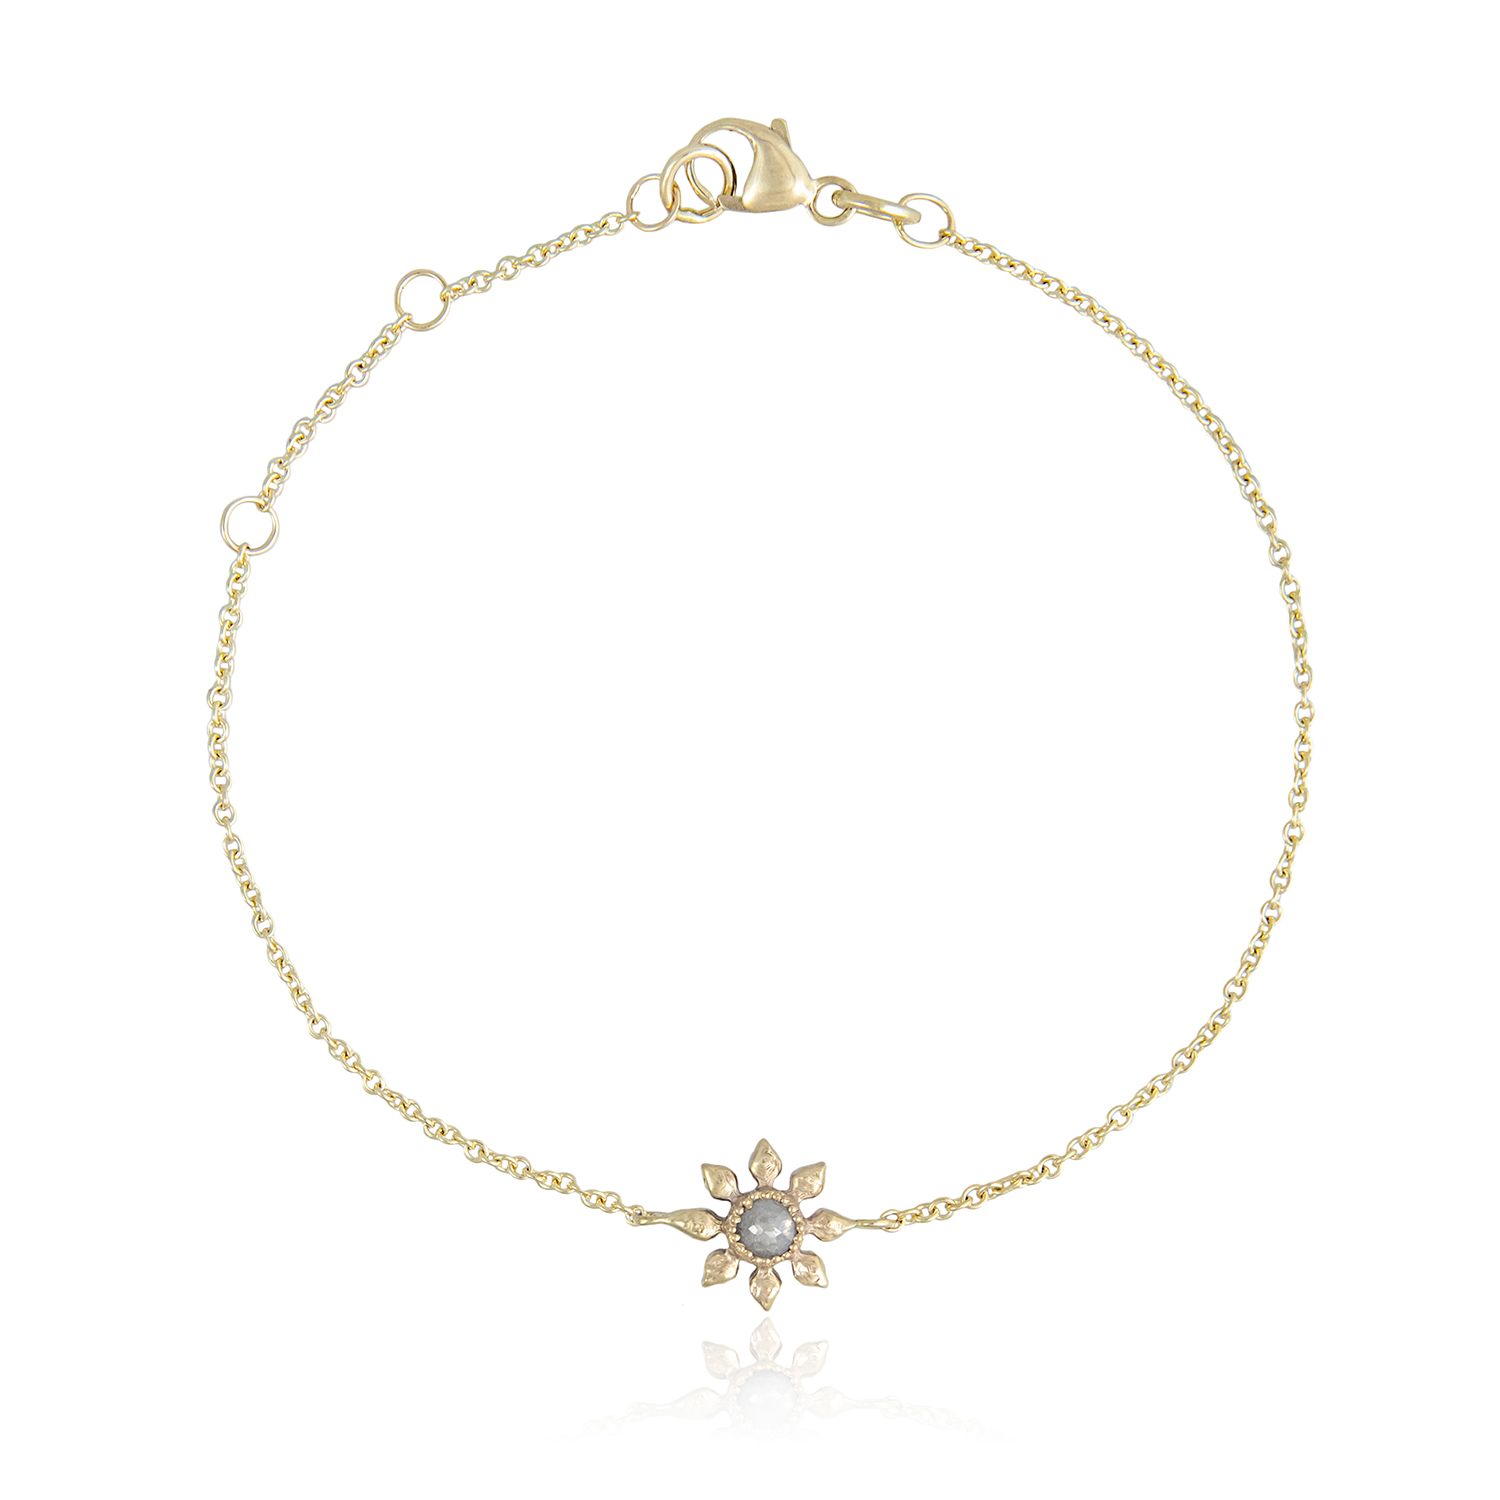 Natalie Perry Jewellery, Diamond Flower Bracelet